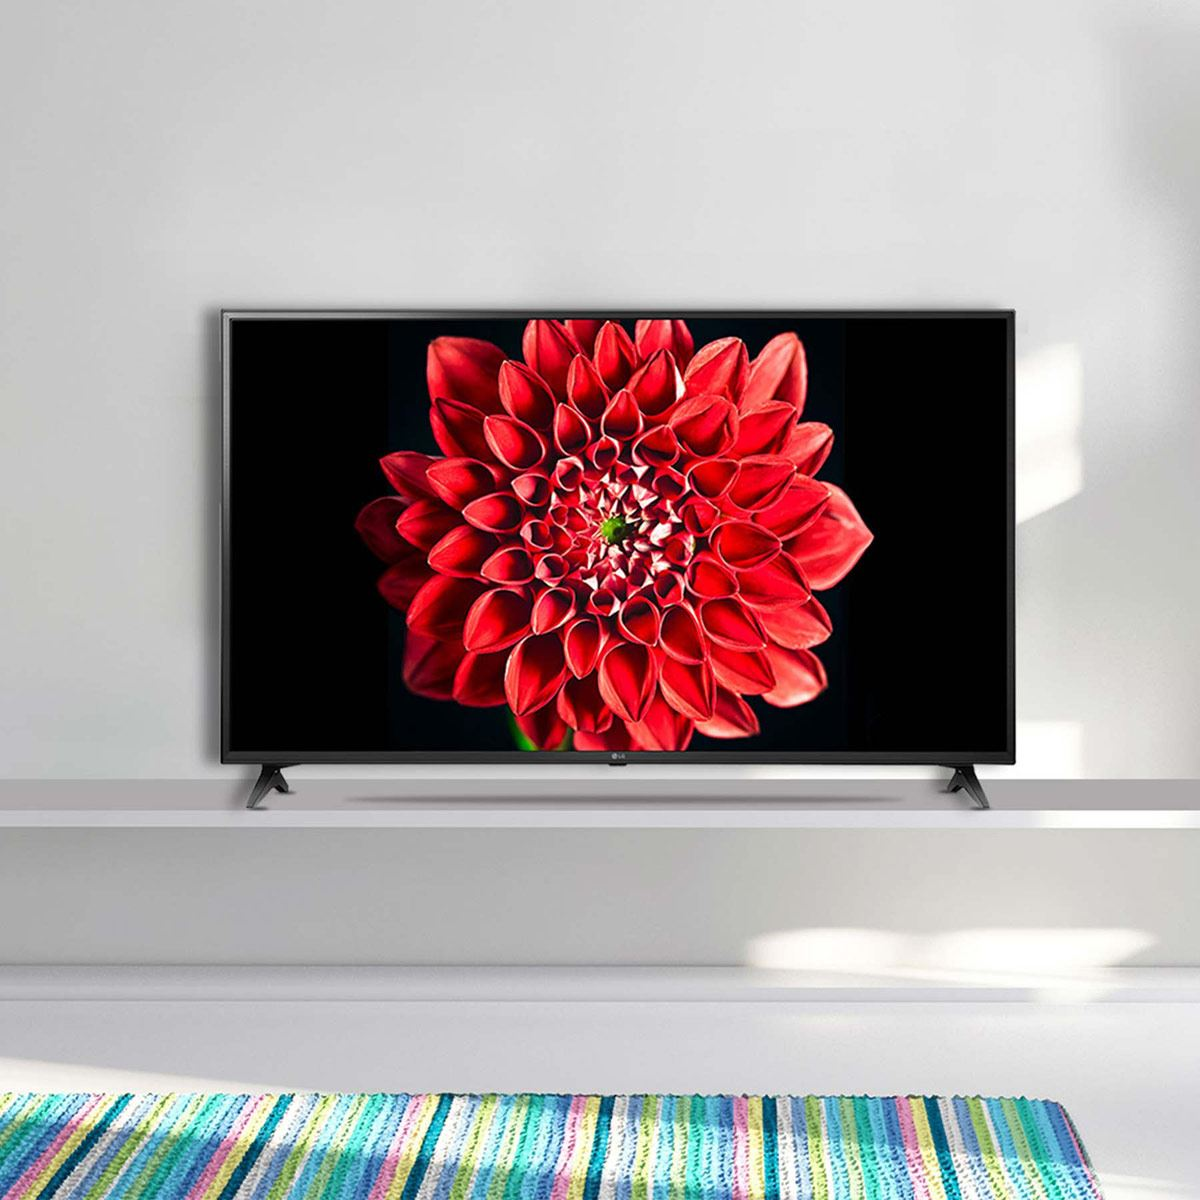 Pantalla LG UHD TV AI ThinQ 4K 49